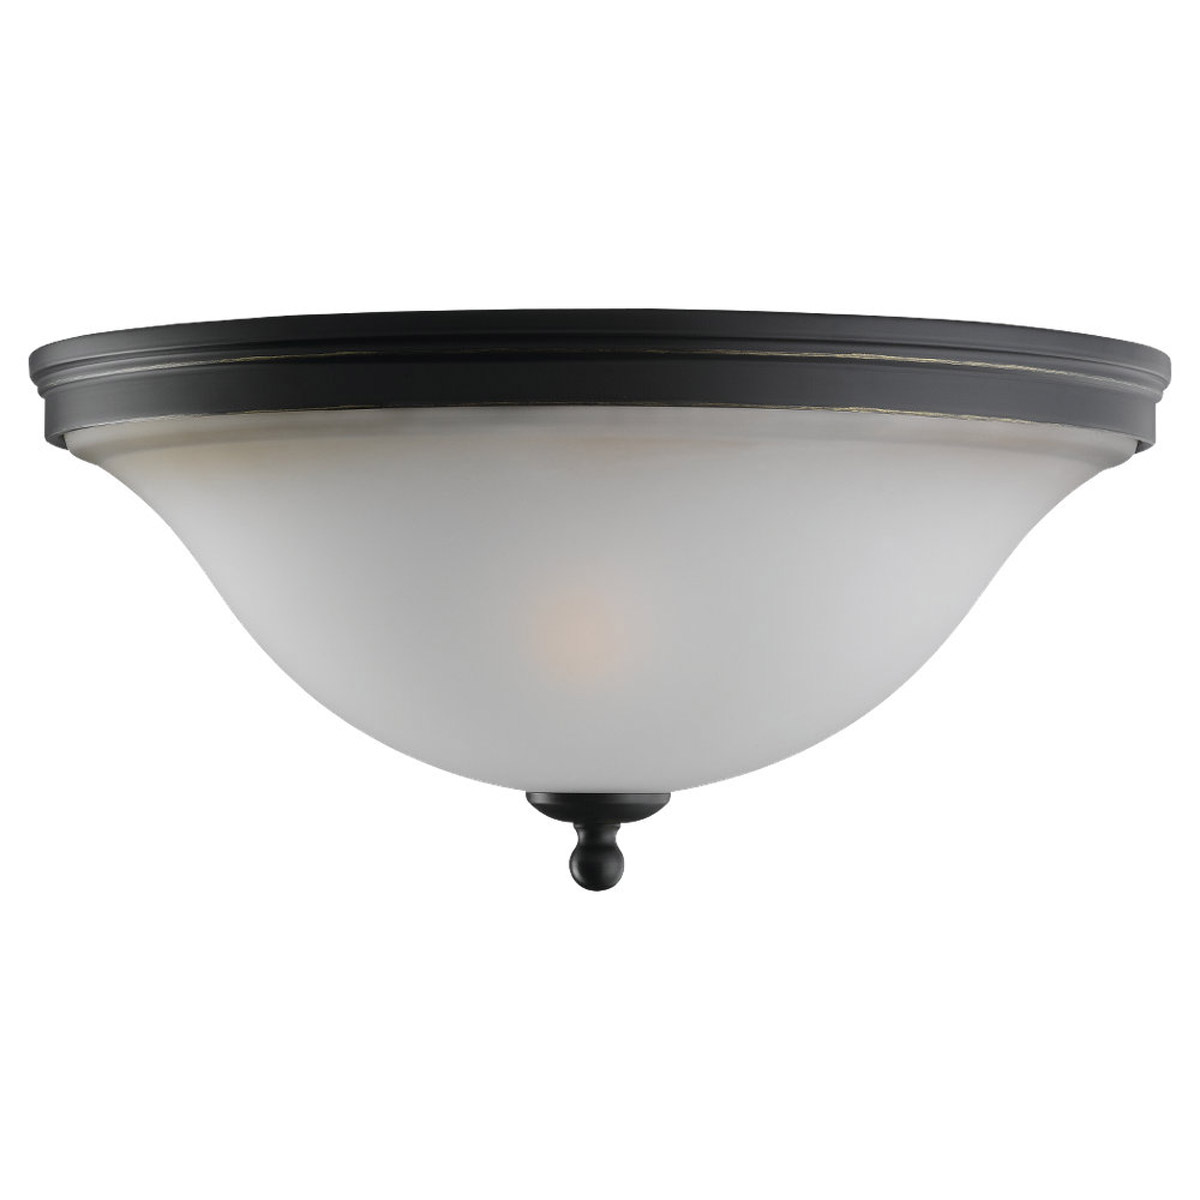 Sea Gull Lighting Gladstone 2 Light Flush Mount in Heirloom Bronze 75850-782 photo